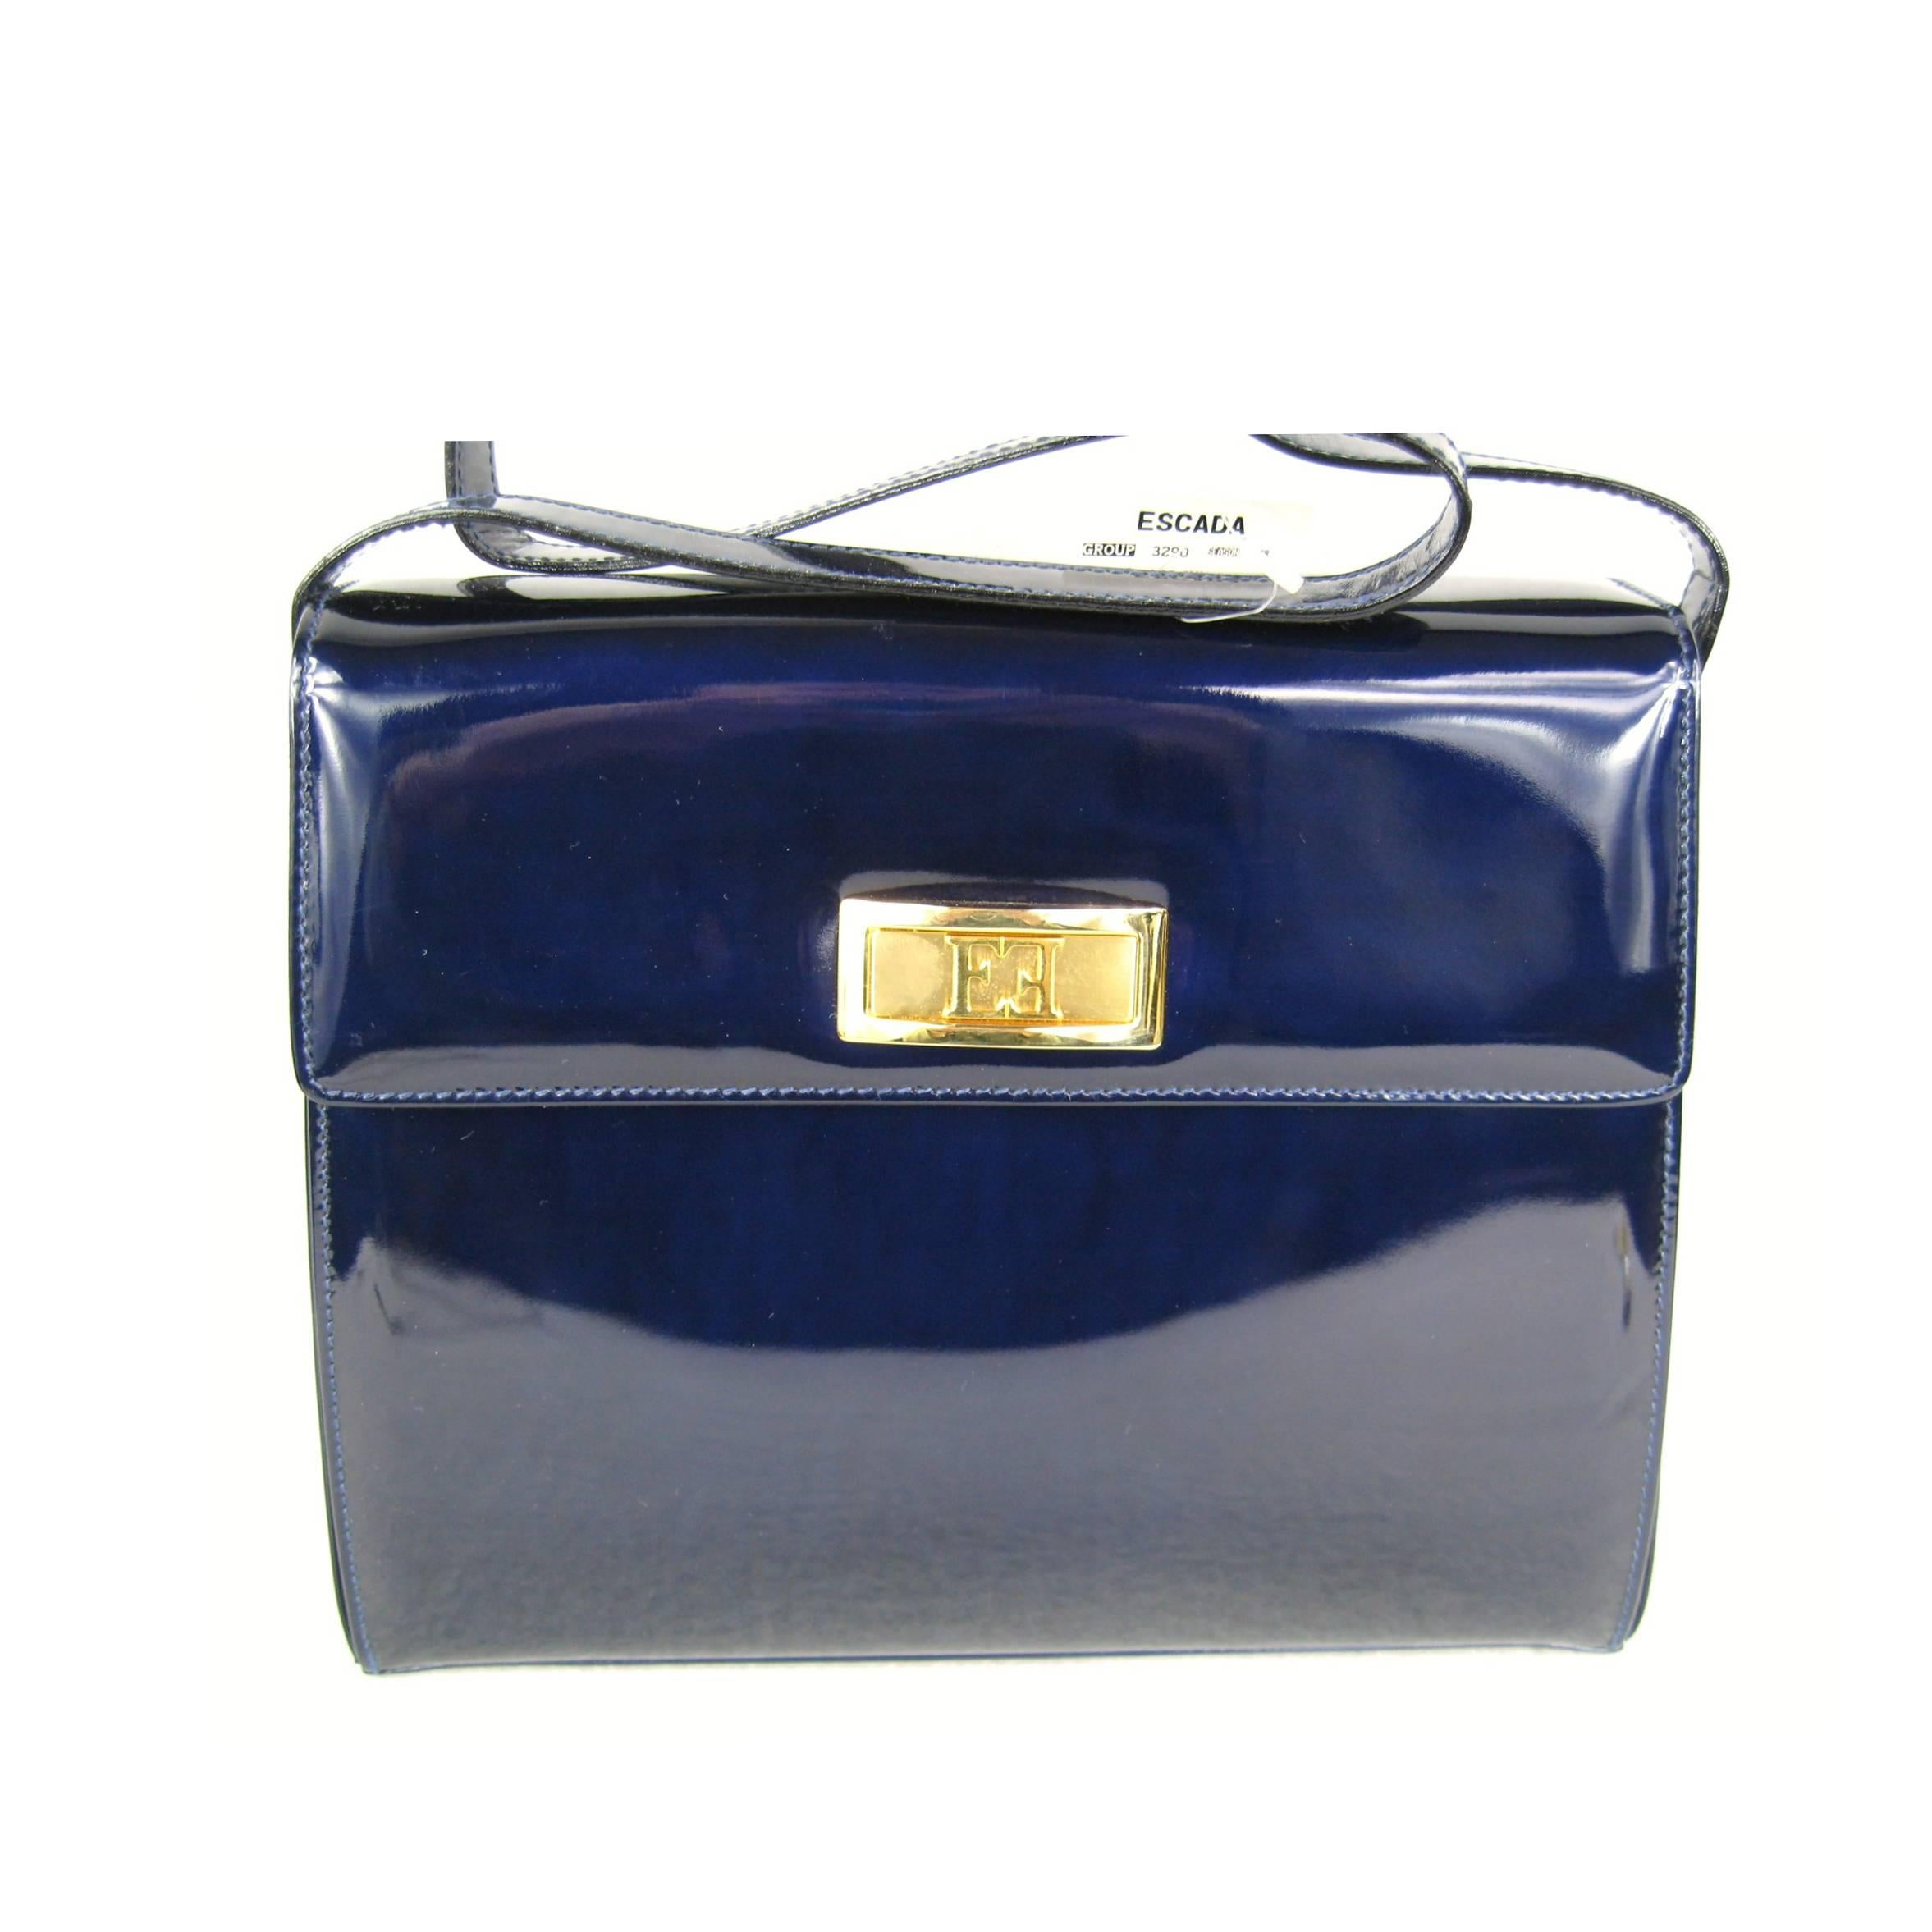 1stdibs 1990s Escada Blue Patent Leather Kelly Hand Bag Never Used Tags Attached i8Ysz